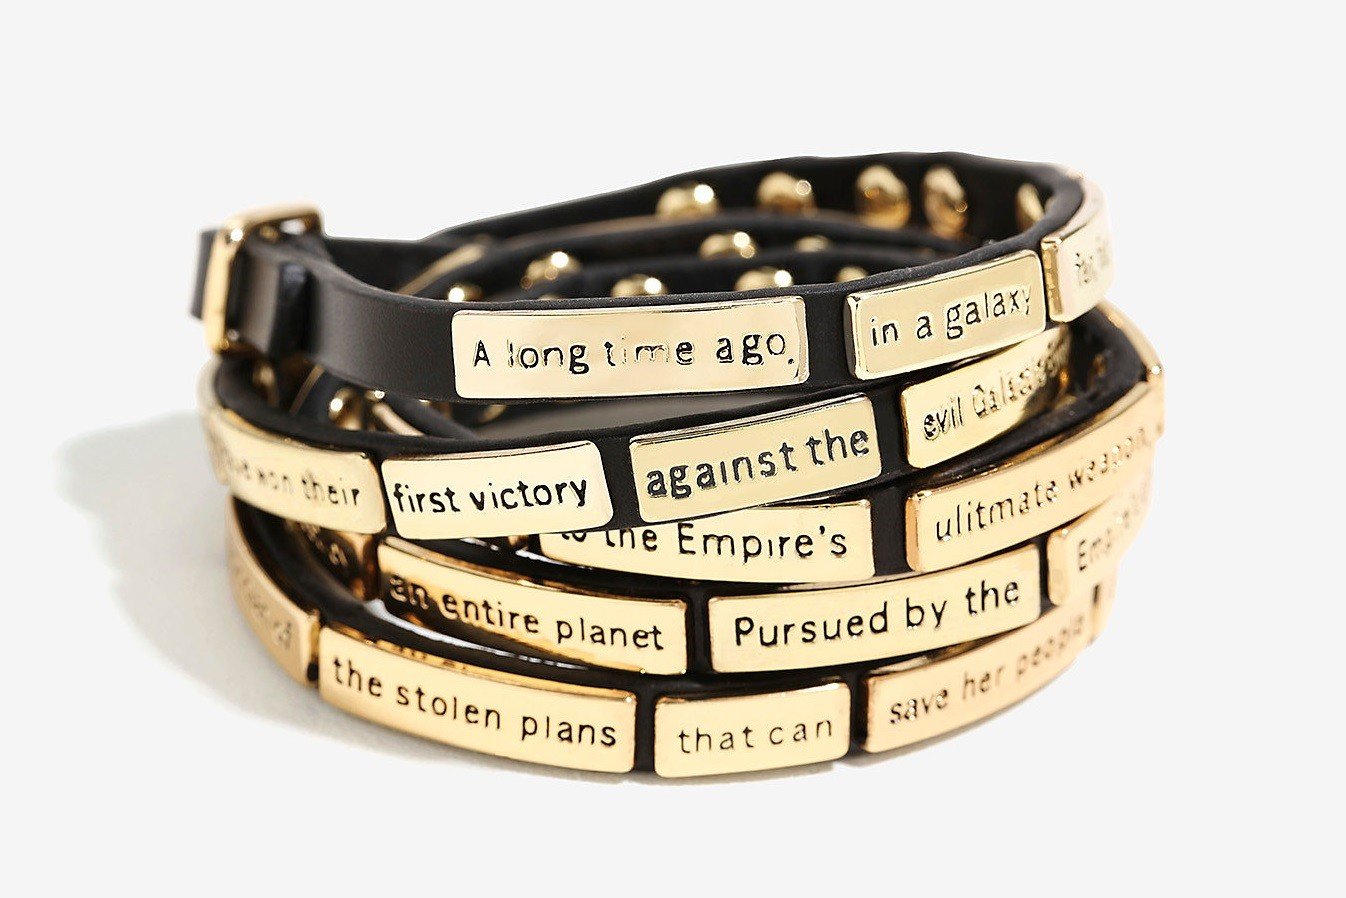 Star Wars wrap bracelet at Box Lunch